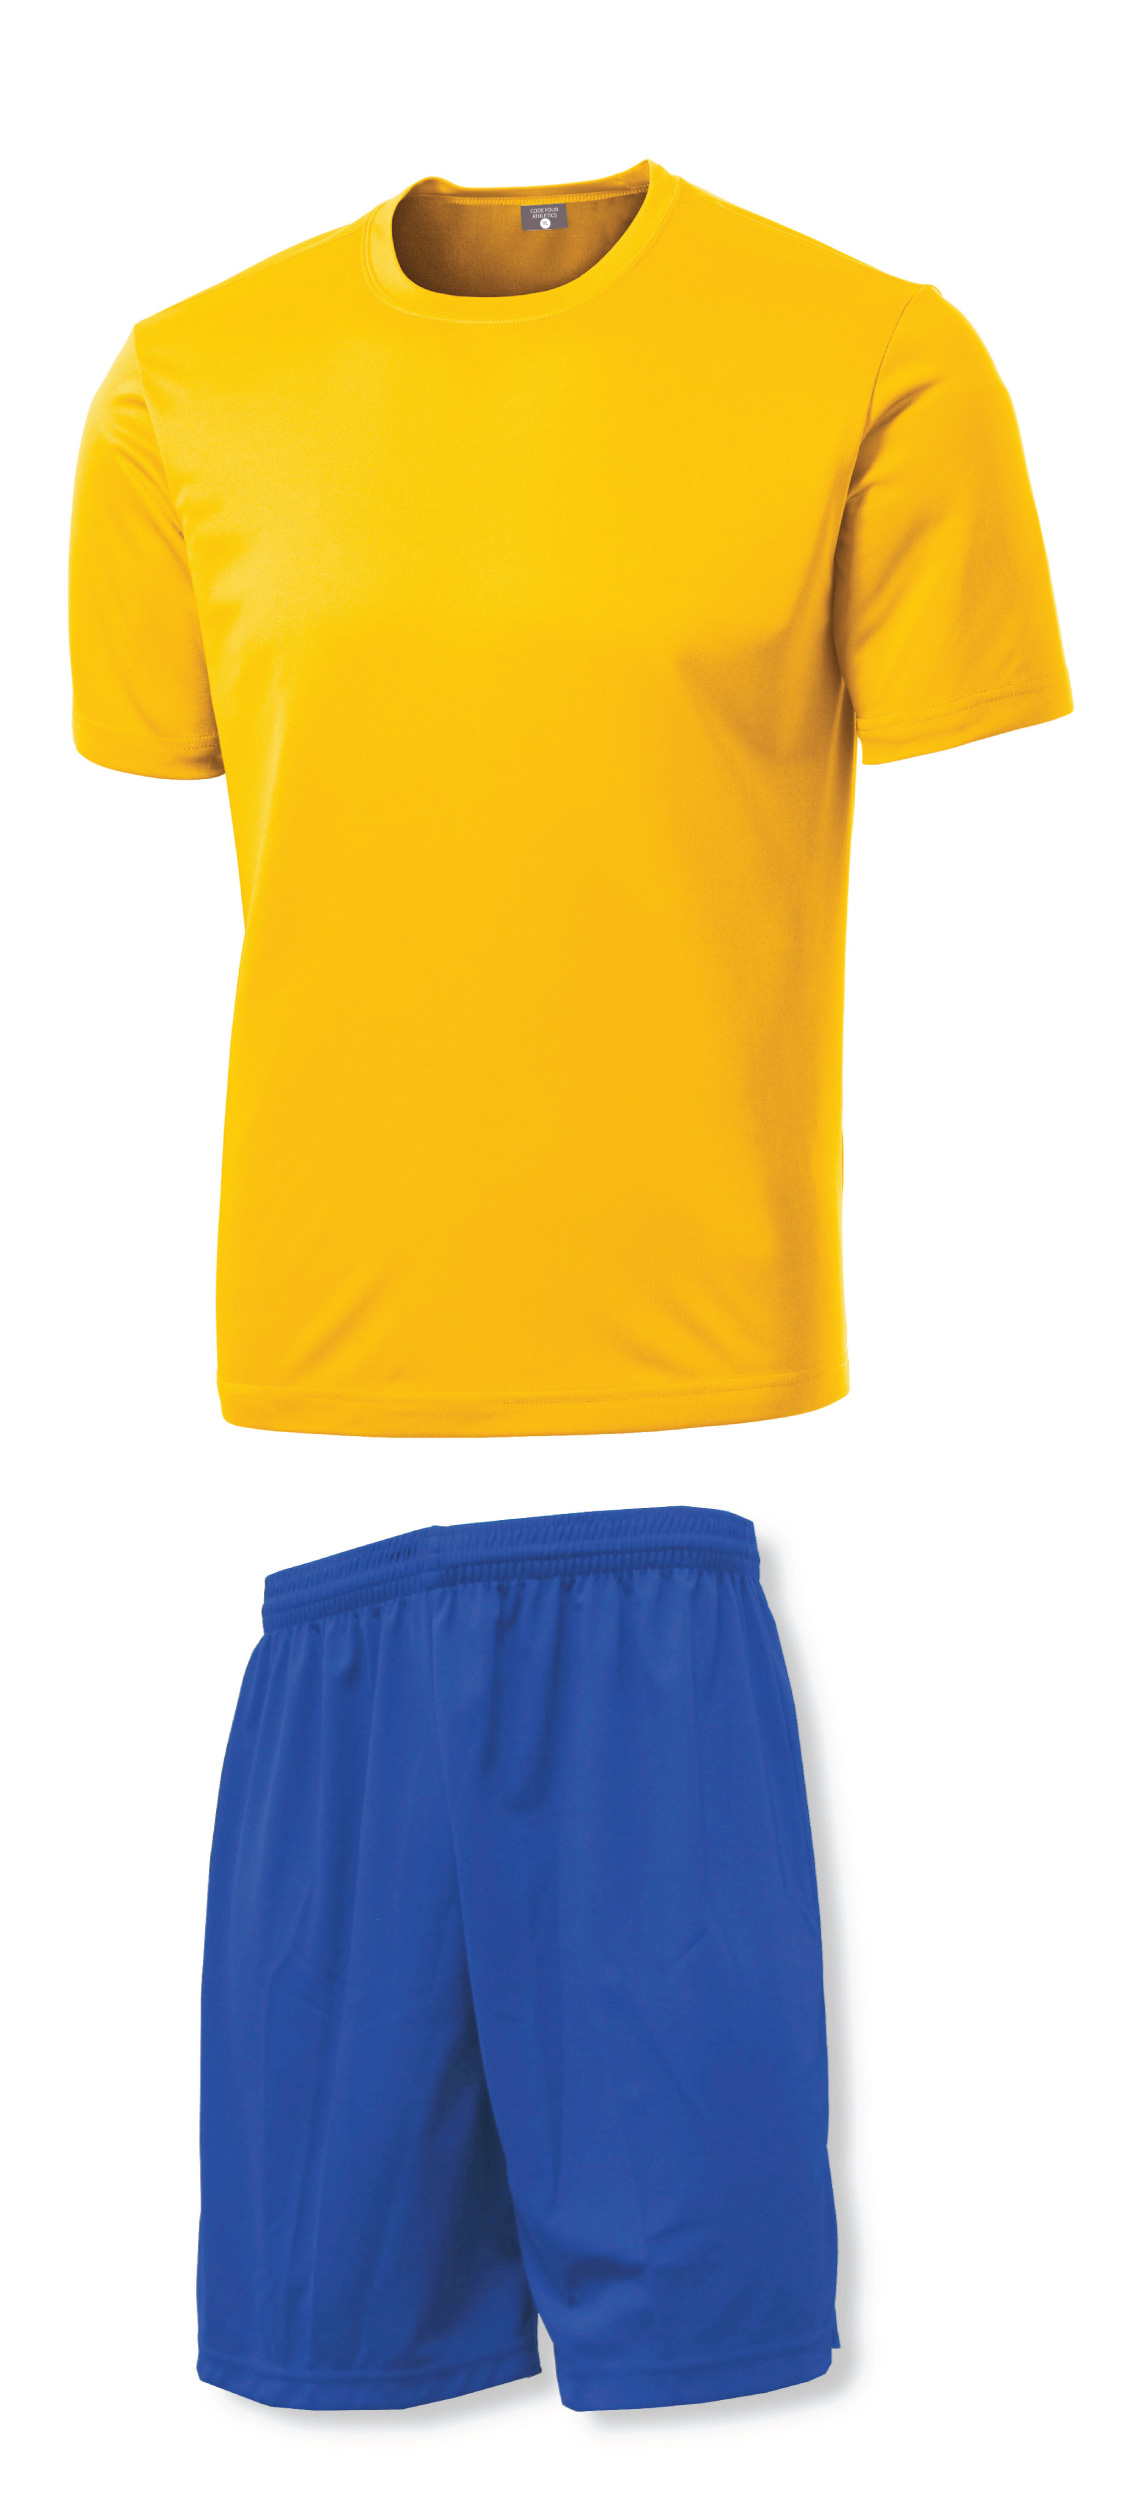 Soccer Training Kit with Gold Jersey and Royal shorts by Code Four Athletics